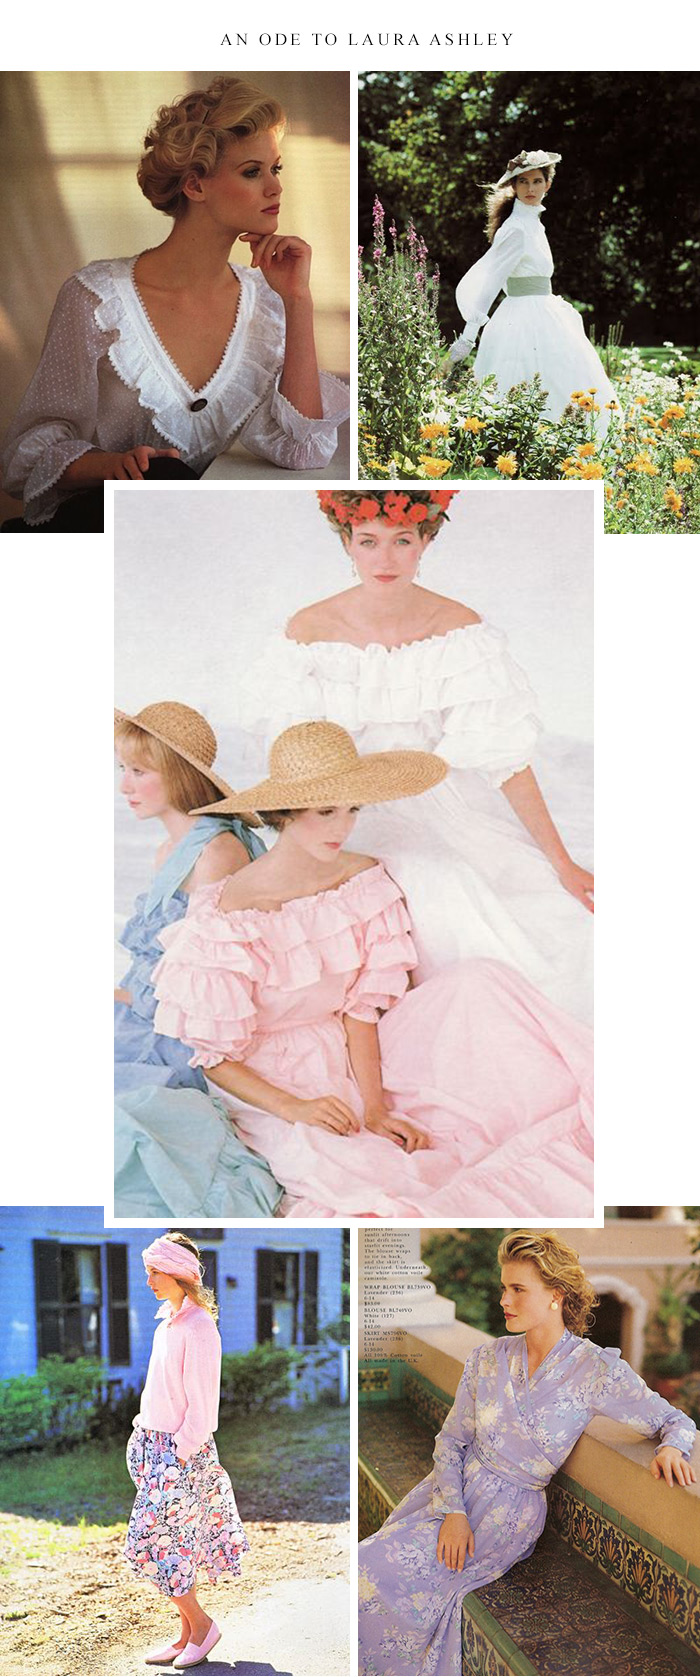 An Ode to Laura Ashley